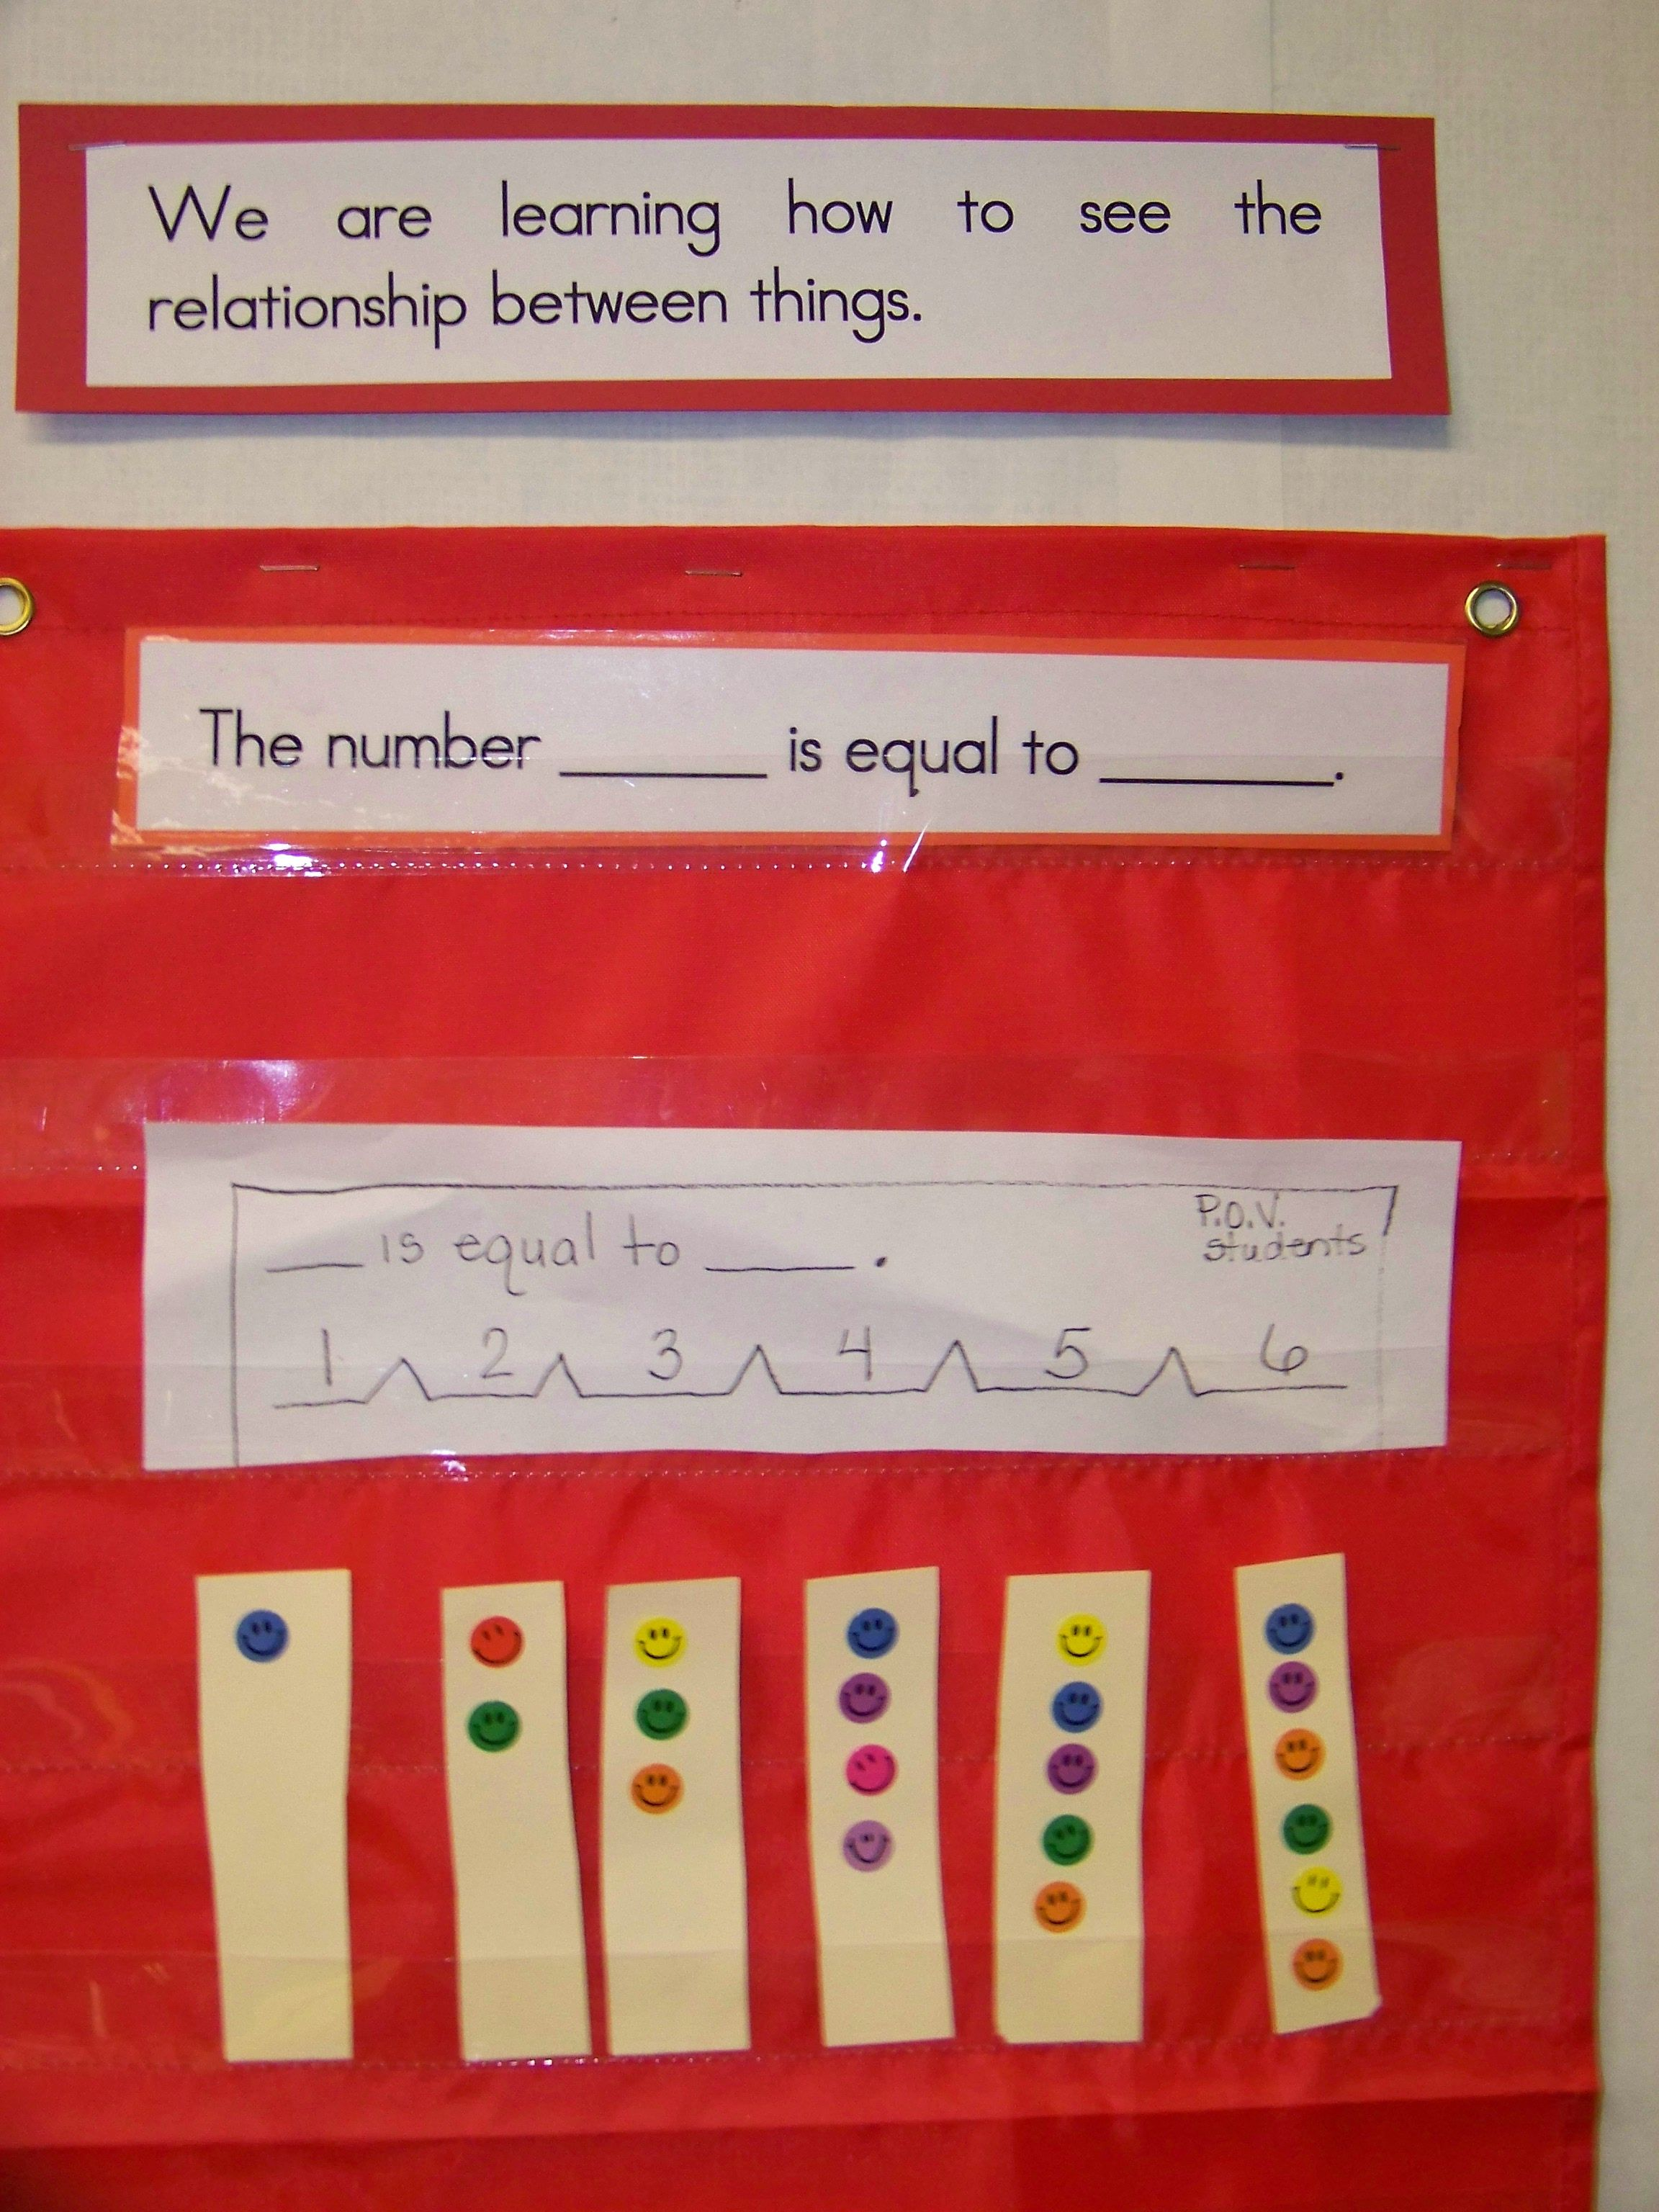 Bridge Map Showing Relationships Between Numerals And The